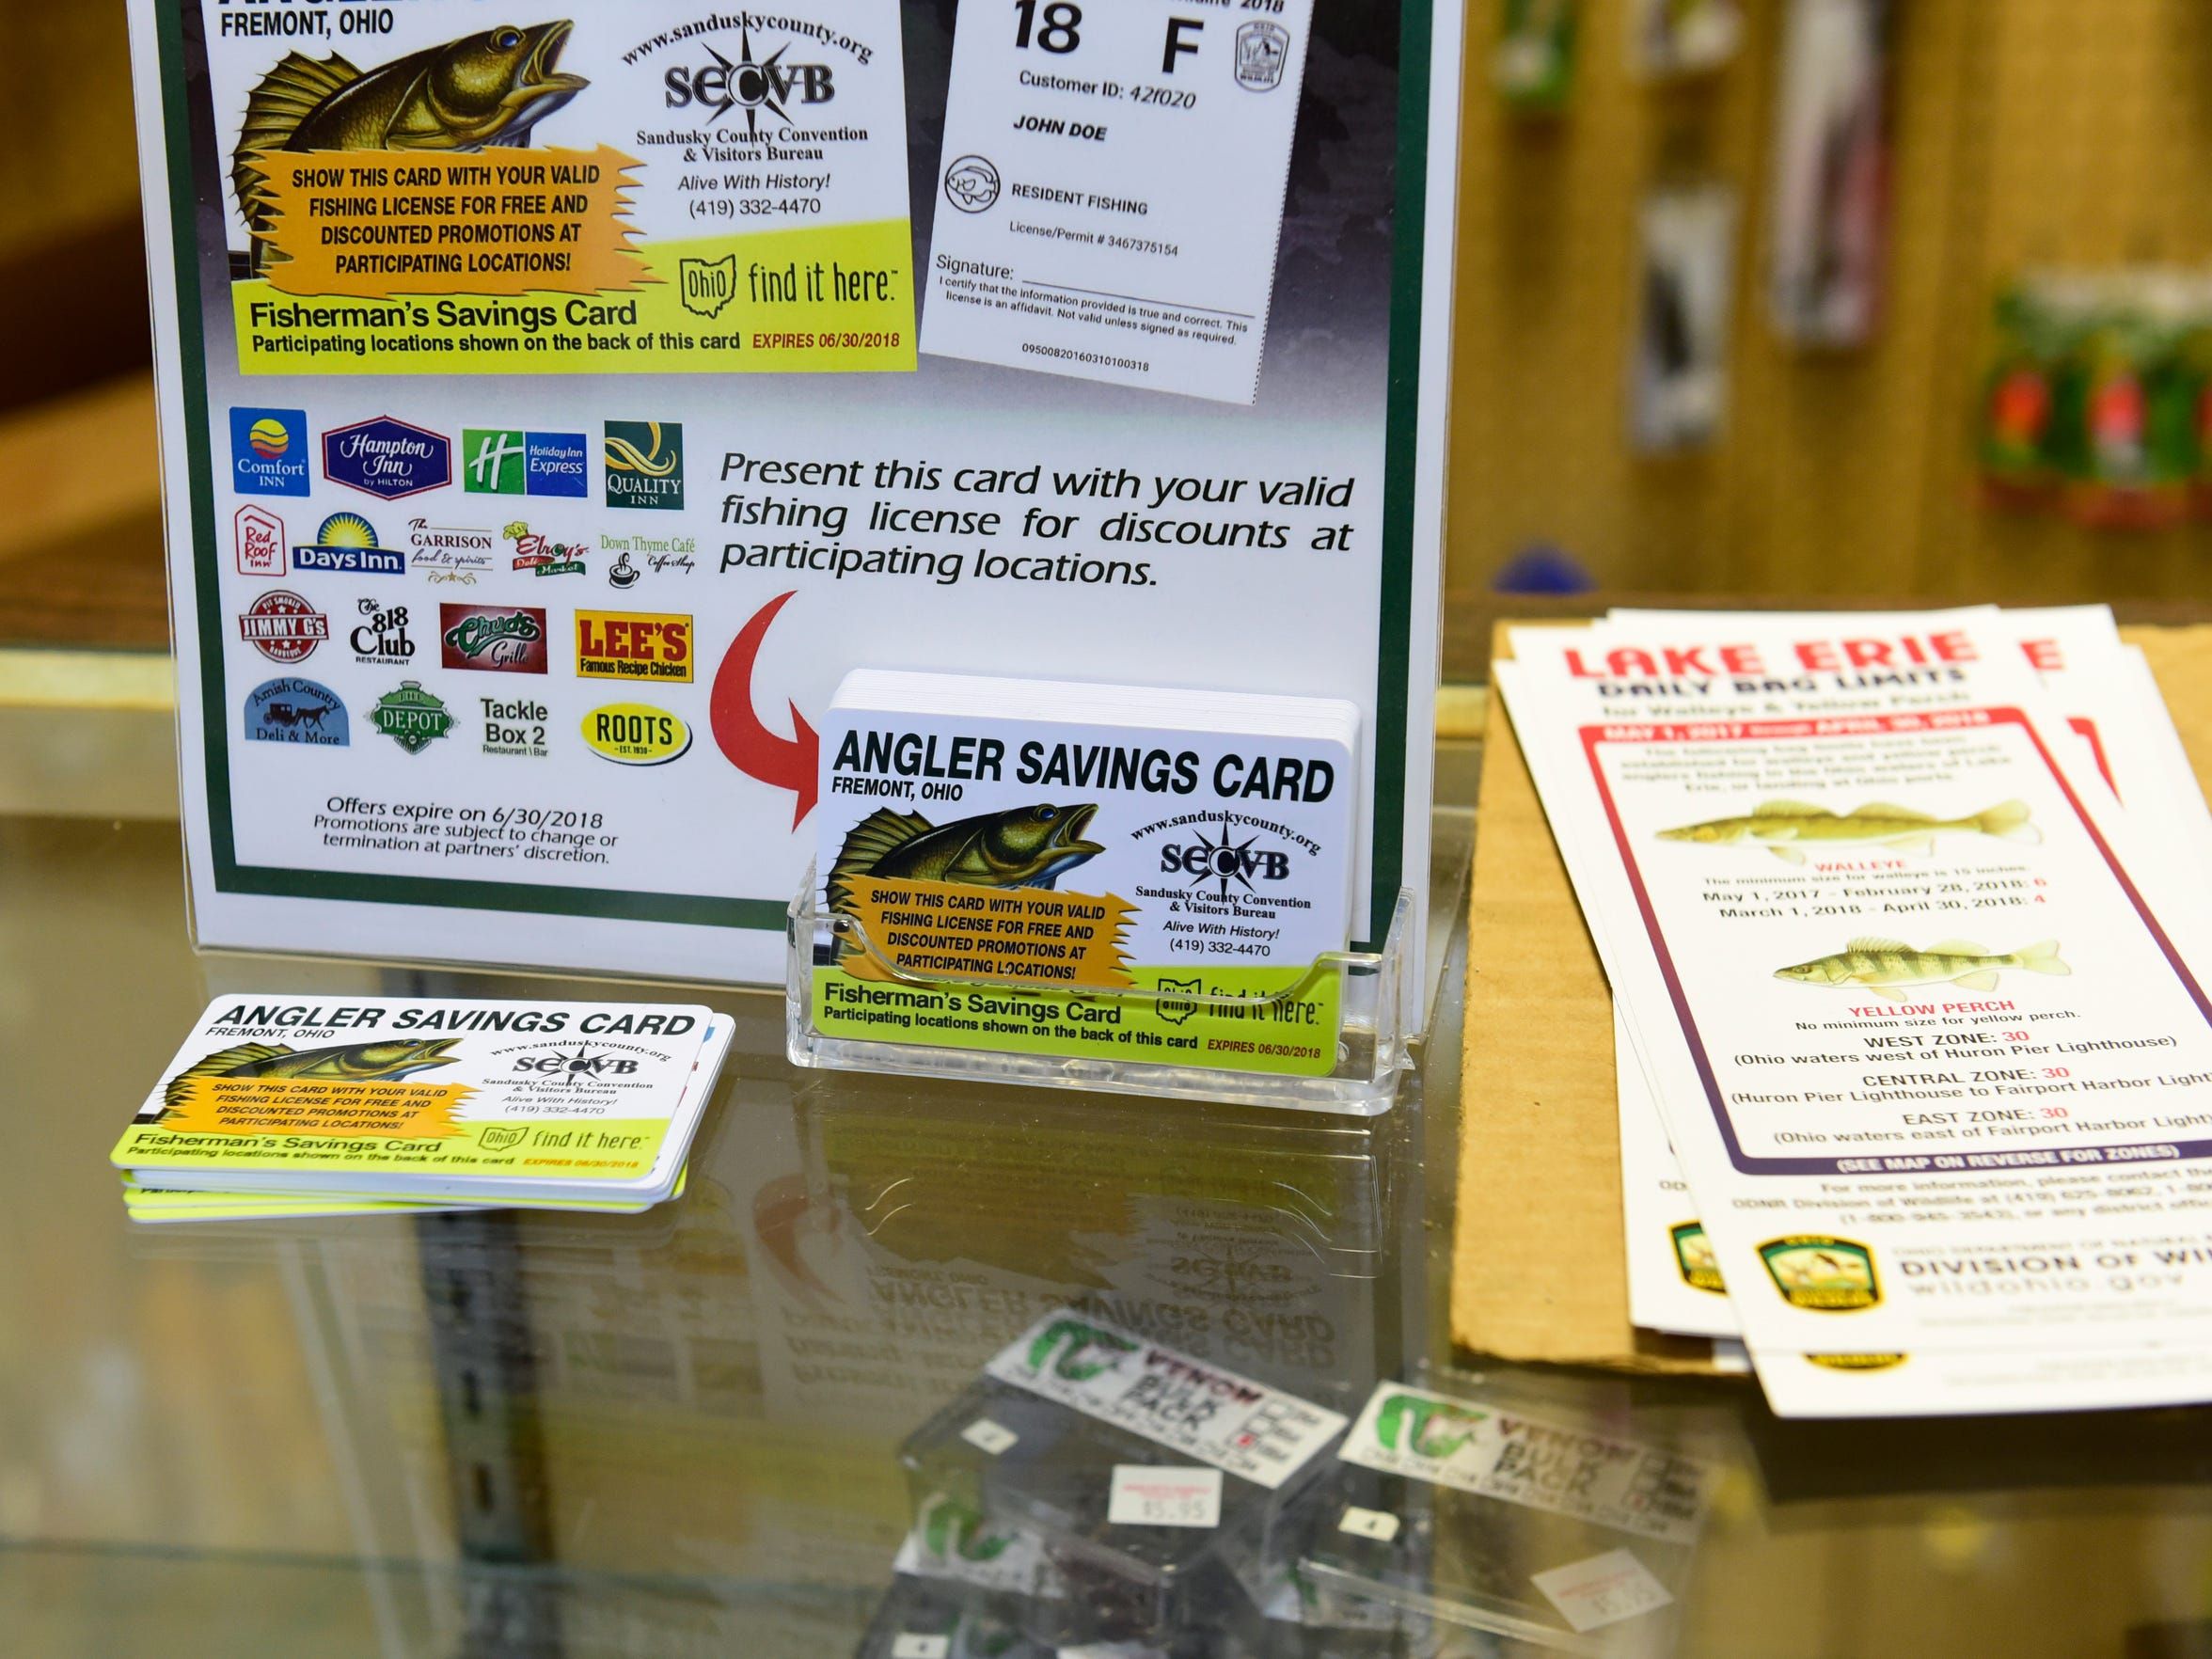 The Sandusky County Convention and Visitors Bureau is again offering Anger Savings Cards to fishermen who come to the area for the annual walleye and white bass runs.